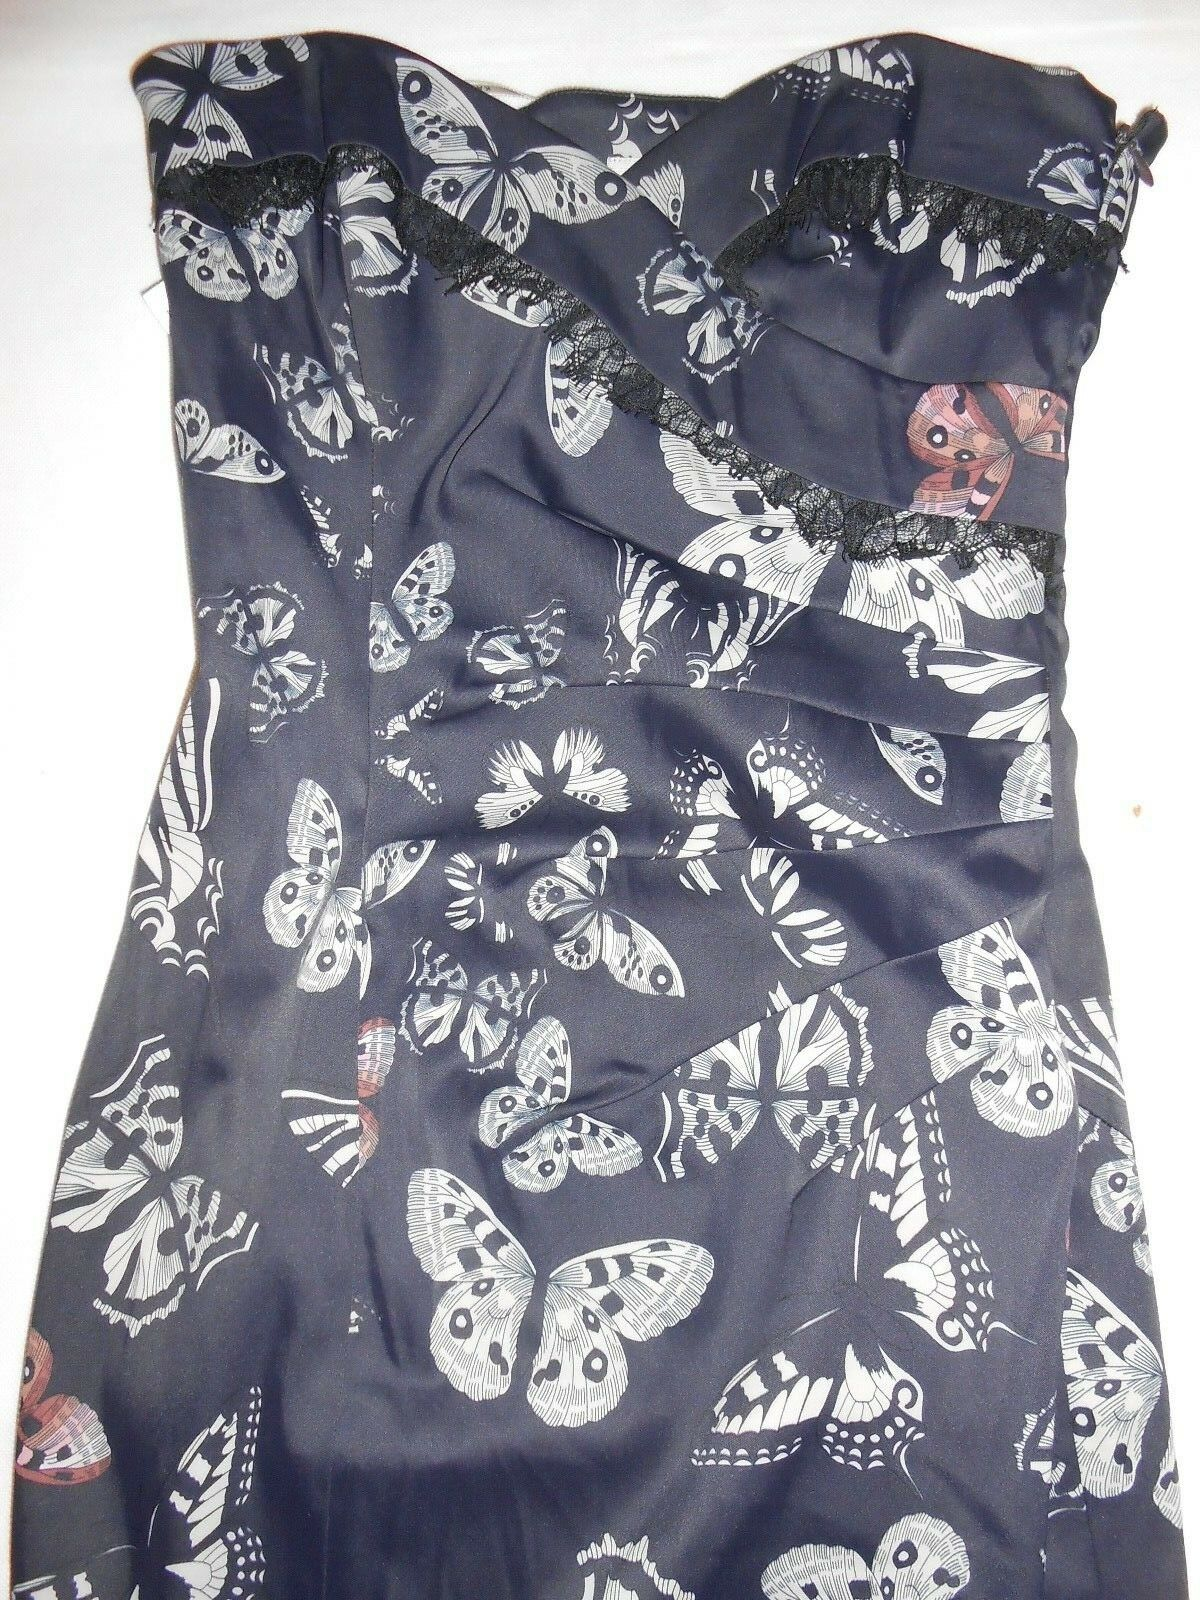 New Karen Millen butterfly dress UK8 RRP